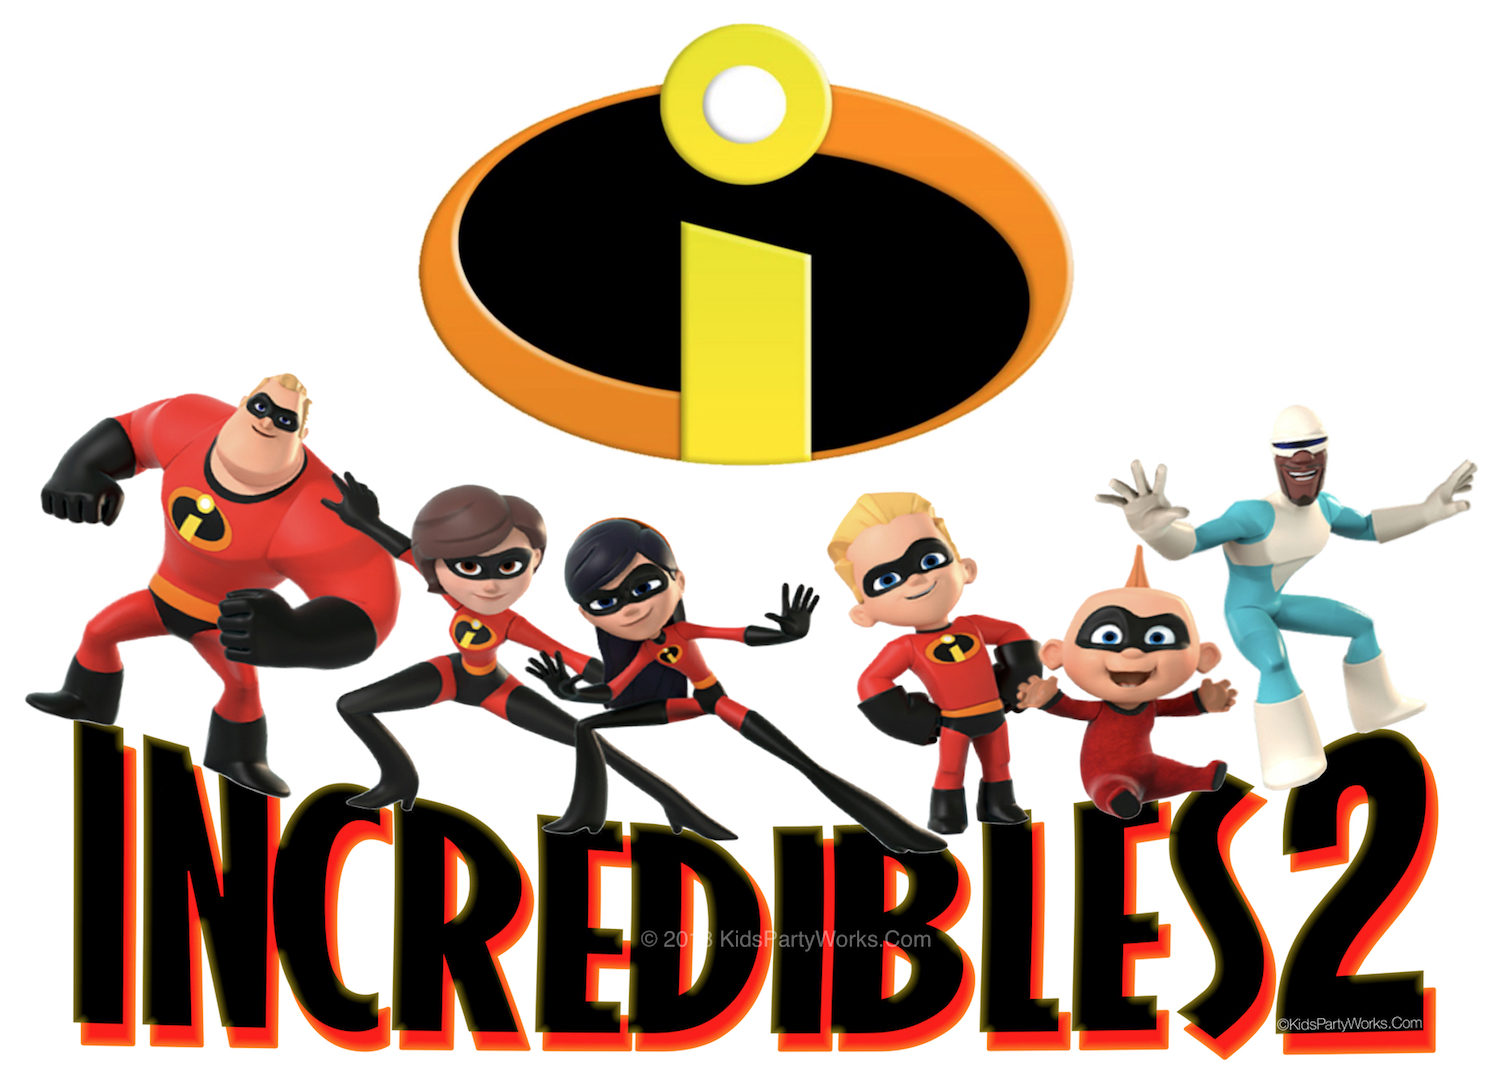 The Incredibles font and Incredibles 2 font are the same but still so much fun. Create cool party printables like Incredibles invitation, Incredibles cake topper, cupcake toppers, bottle labels.